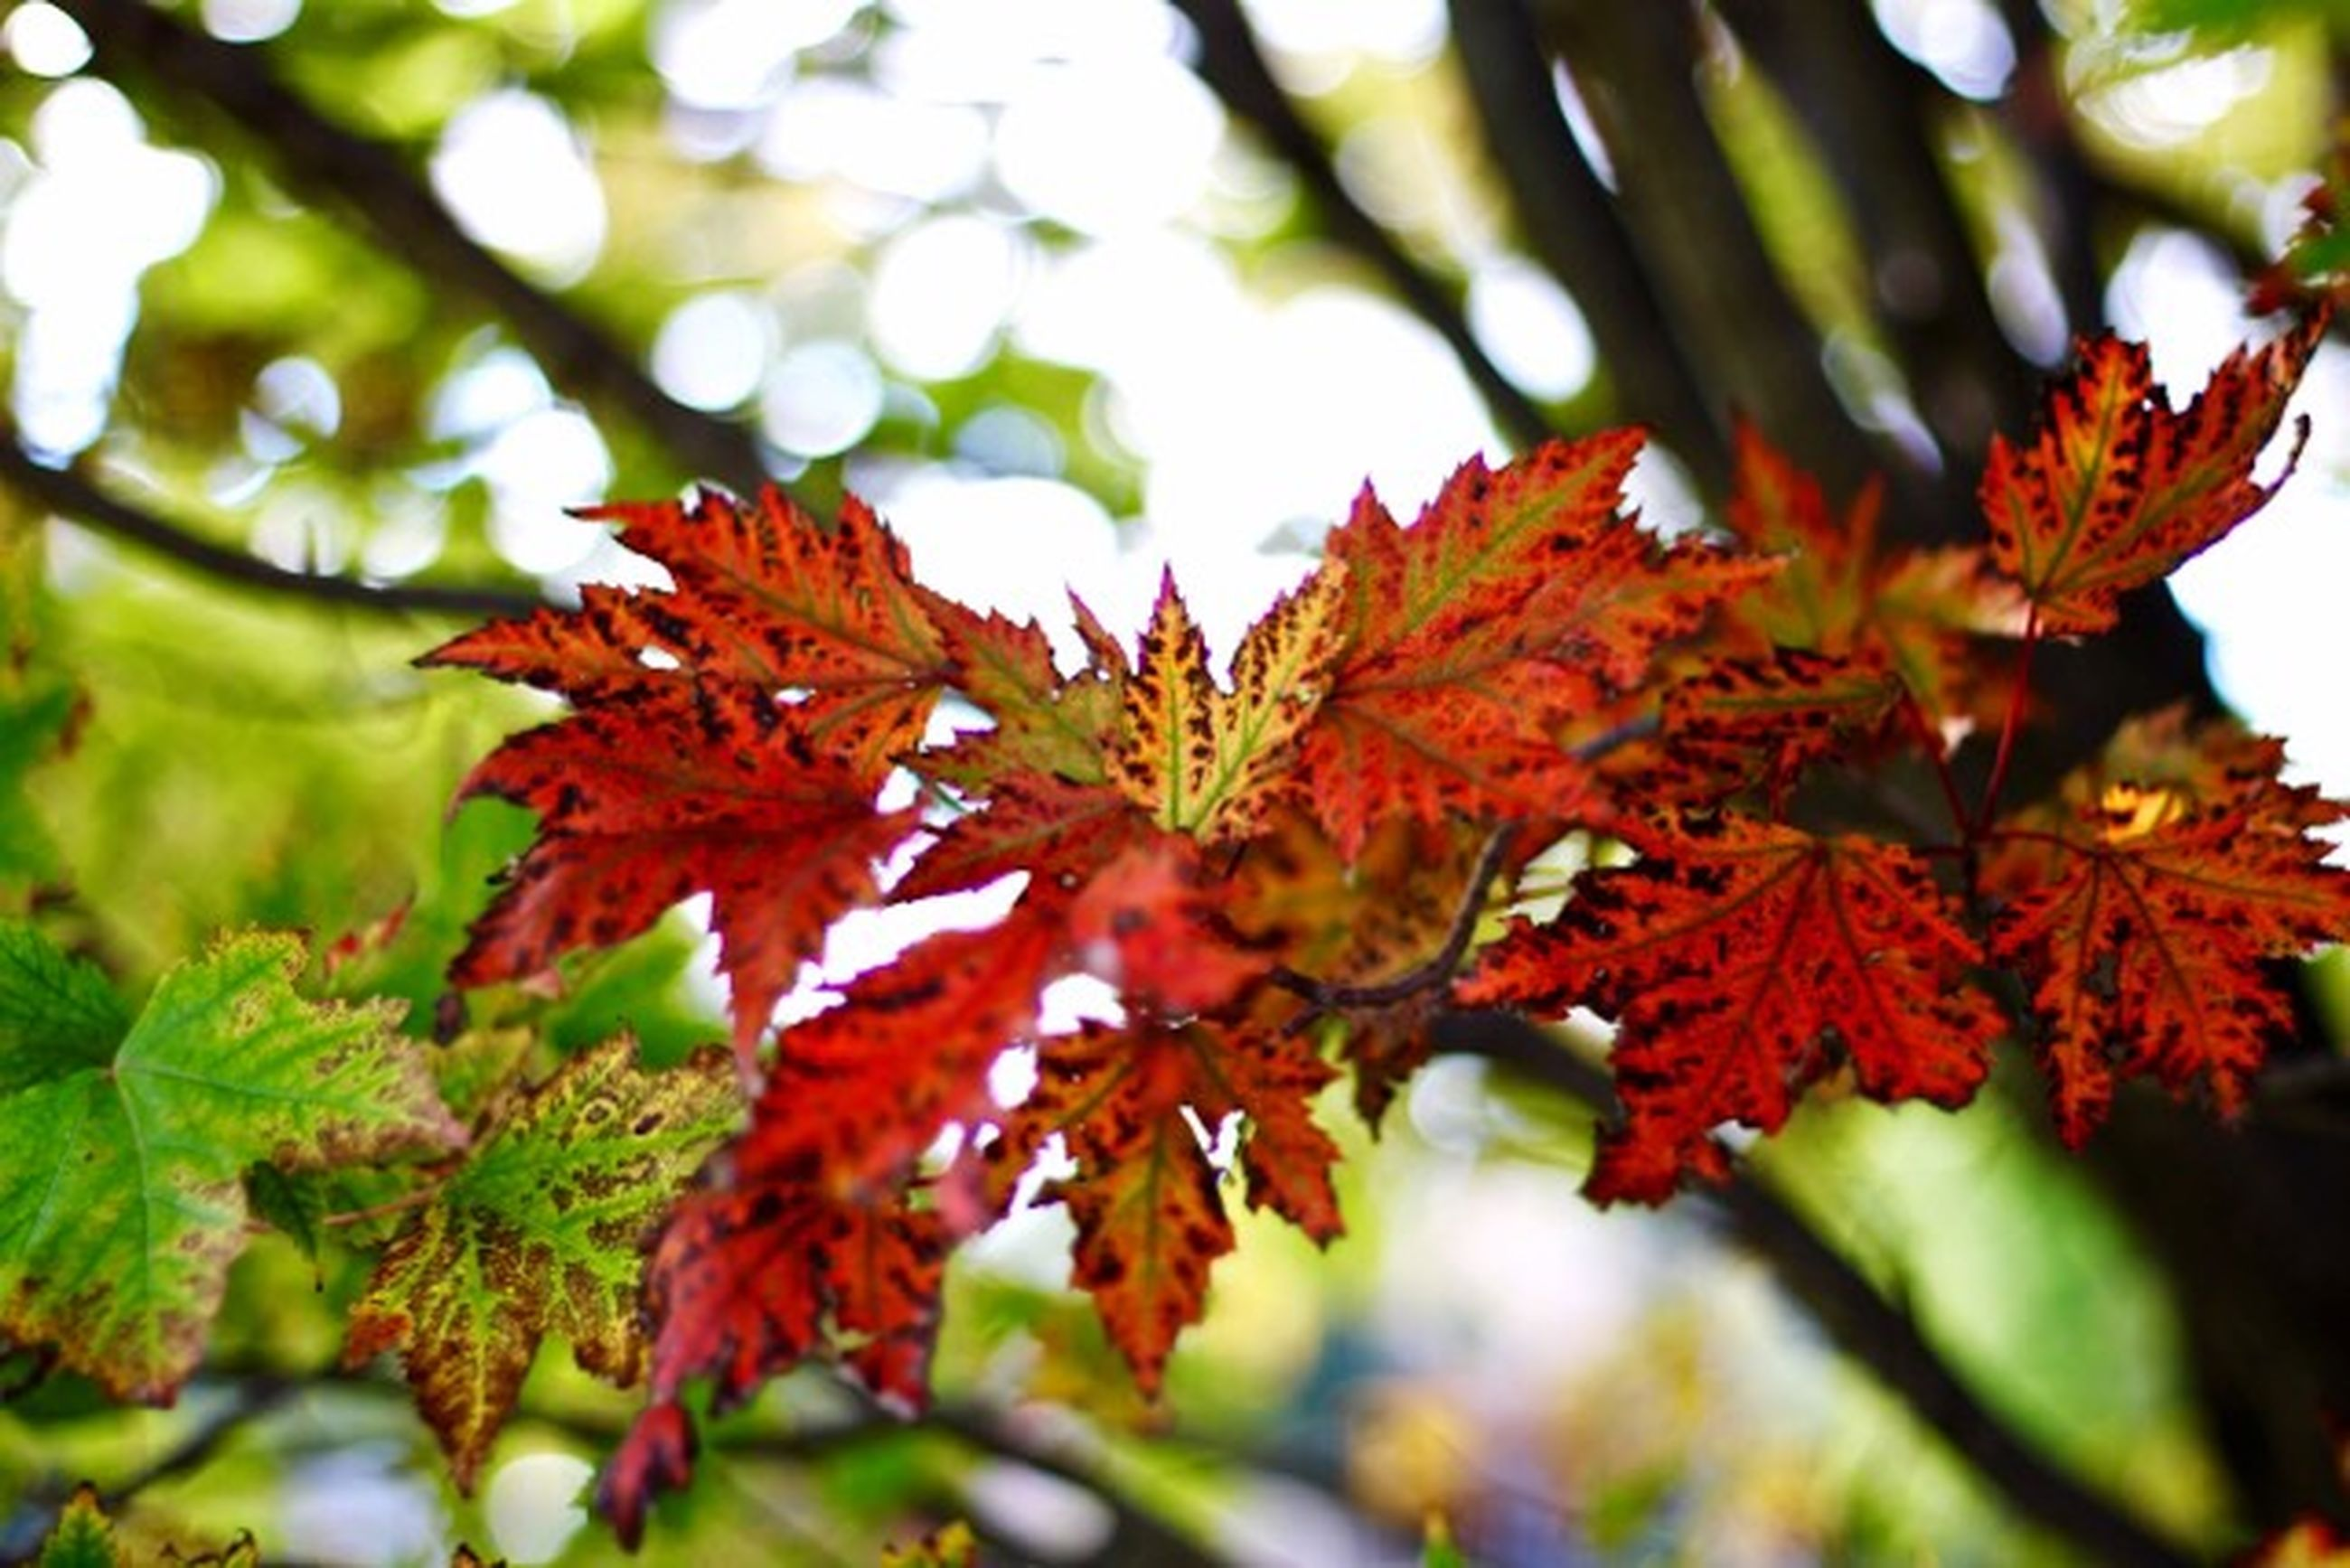 autumn, leaf, change, season, tree, leaves, orange color, branch, nature, maple leaf, red, focus on foreground, growth, close-up, leaf vein, beauty in nature, maple tree, tranquility, day, selective focus